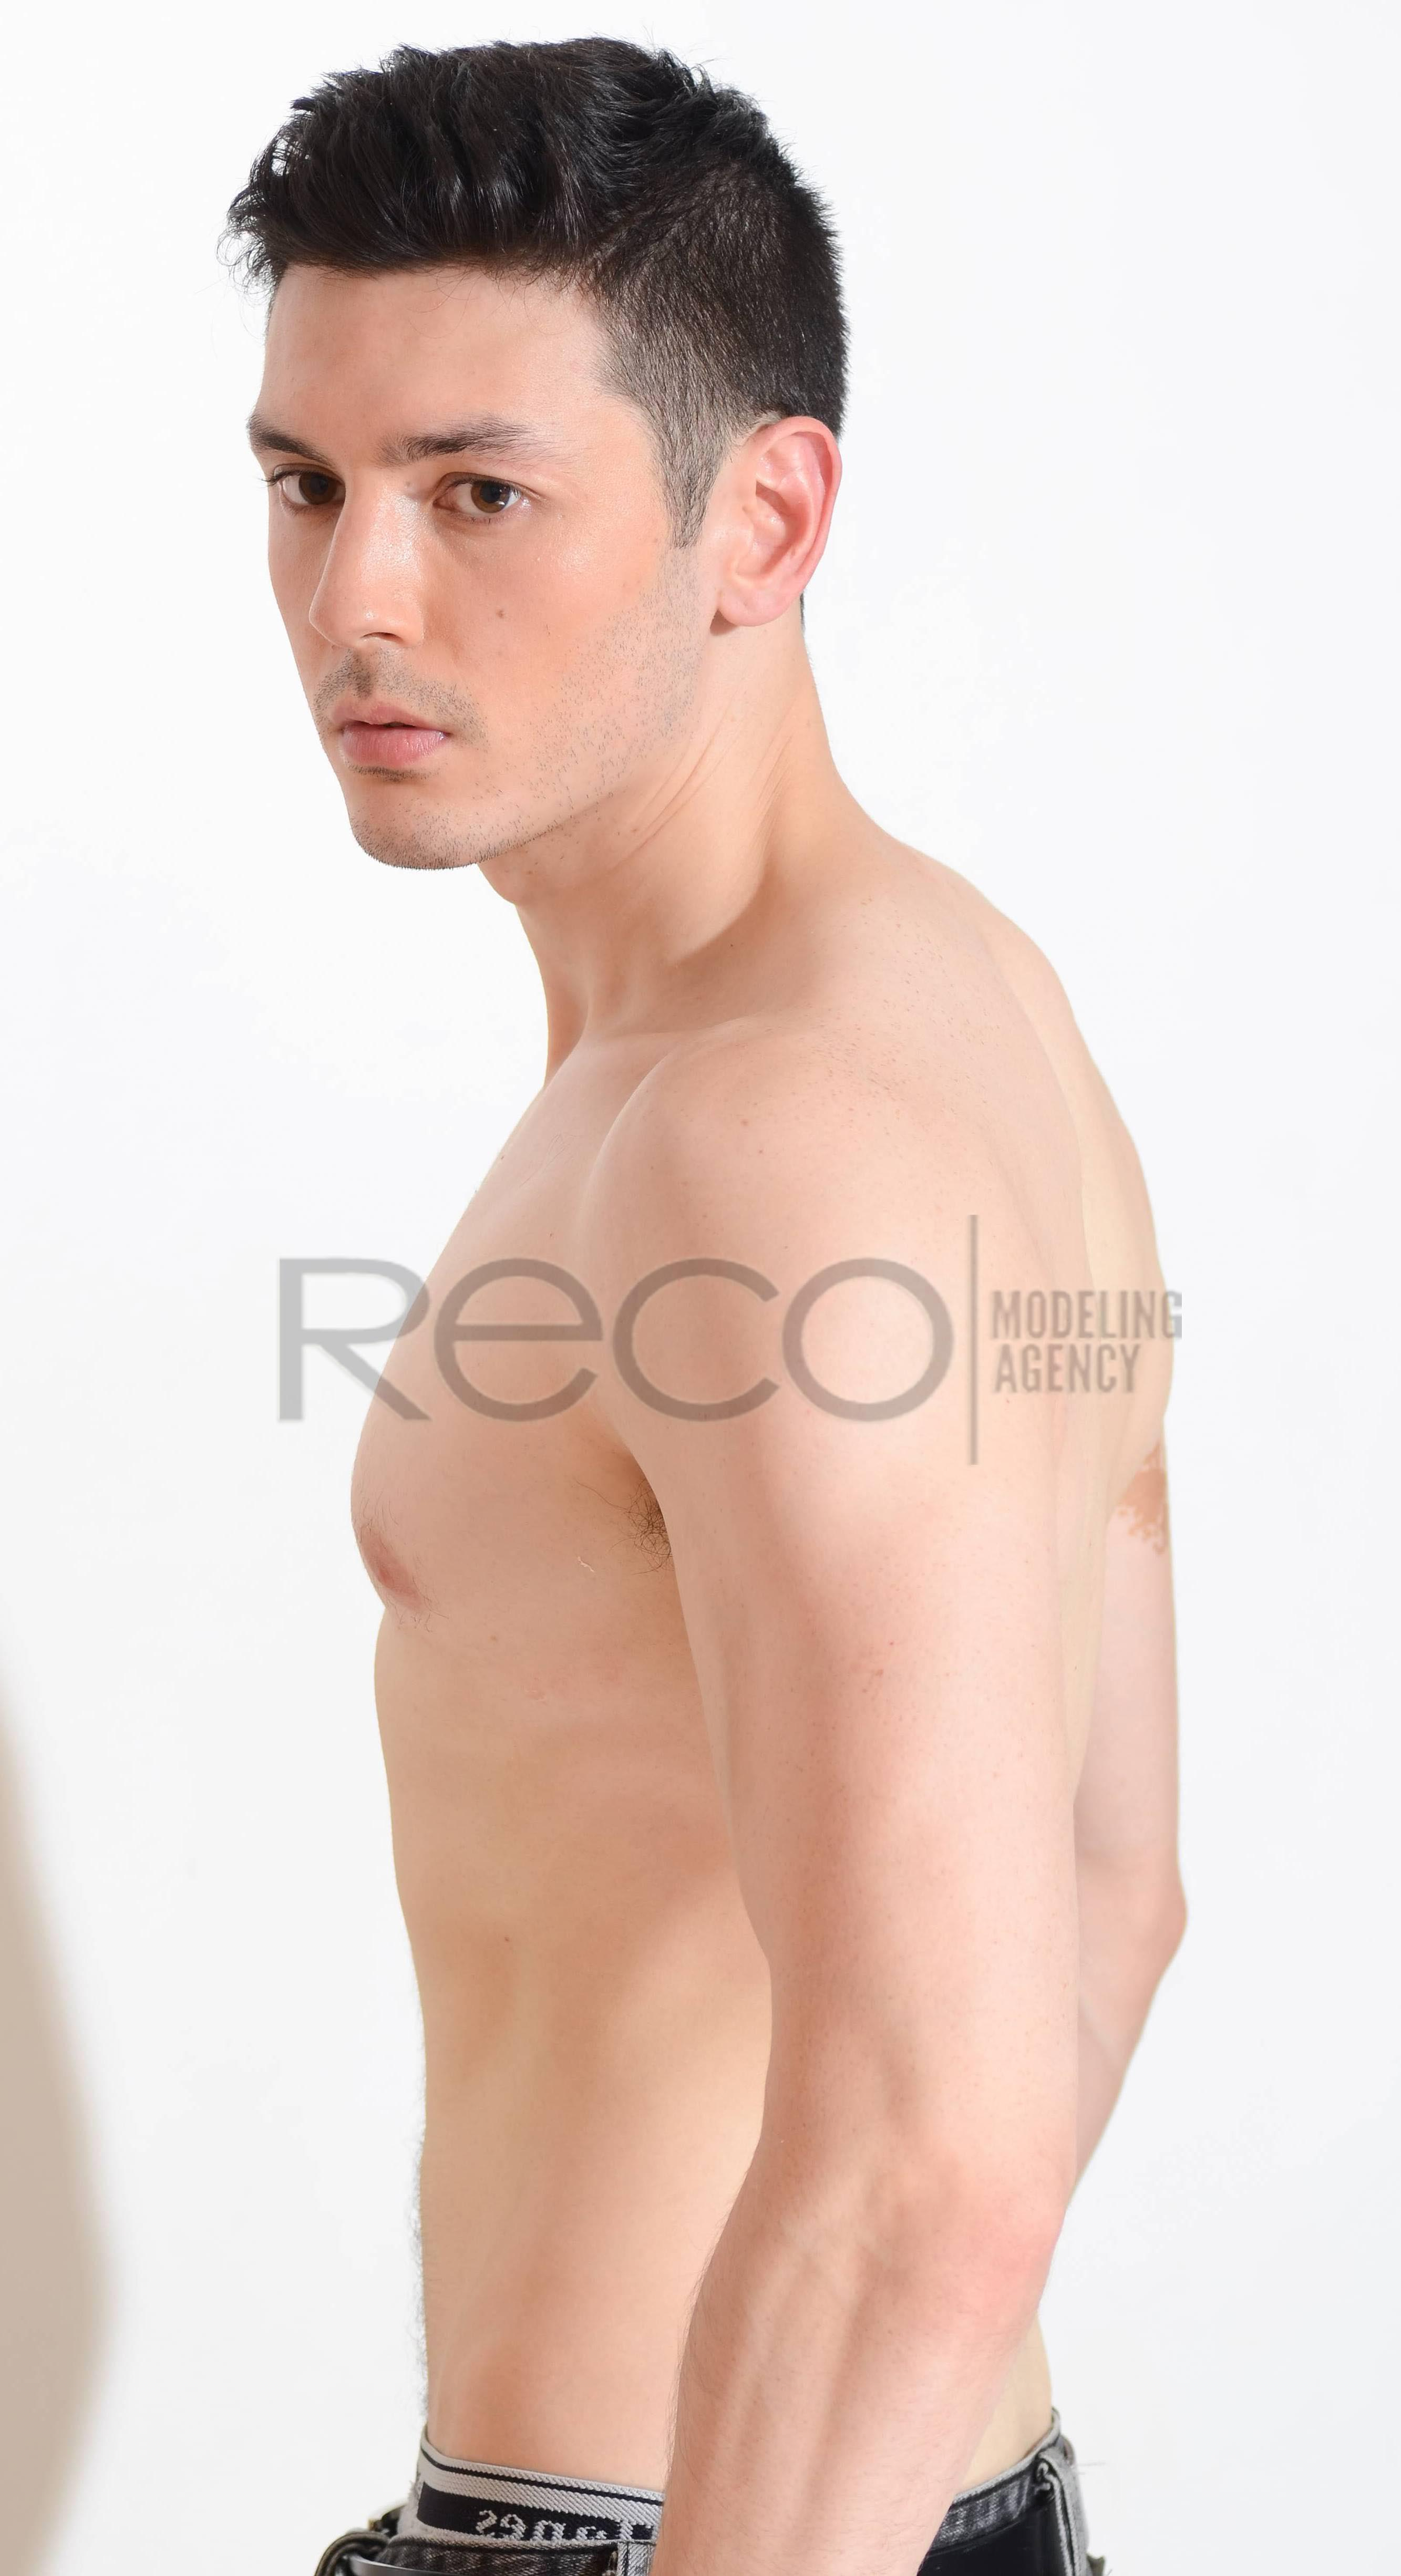 Male Local - Reco Modeling Agency